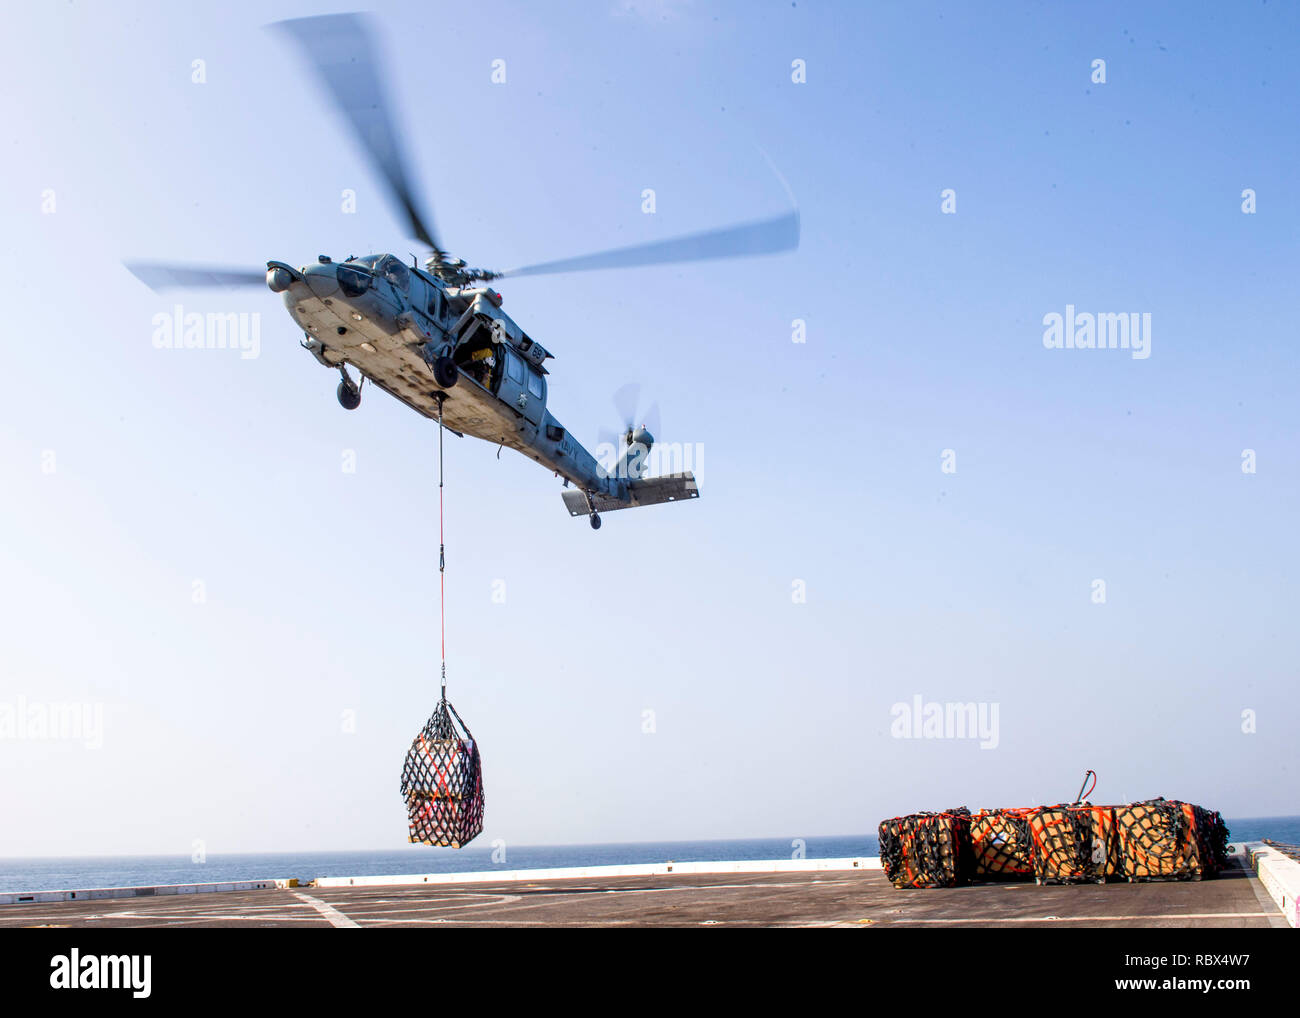 """190107-N-PH222-1116 ARABIAN SEA (Jan. 7, 2018) An MH-60S Sea Hawk helicopter, attached to the """"Blackjacks"""" of Helicopter Sea Combat Squadron (HSC) 21, delivers supplies on the flight deck of the San Antonio-class amphibious transport dock ship USS Anchorage (LPD 23) during a vertical replenishment while on a deployment of the Essex Amphibious Ready Group (ARG) and 13th Marine Expeditionary Unit (MEU). The Essex ARG/13th MEU is flexible and persistent Navy-Marine Corps team deployed to the U.S. 5th Fleet area of operations in support of naval operations to ensure maritime stability and security - Stock Image"""